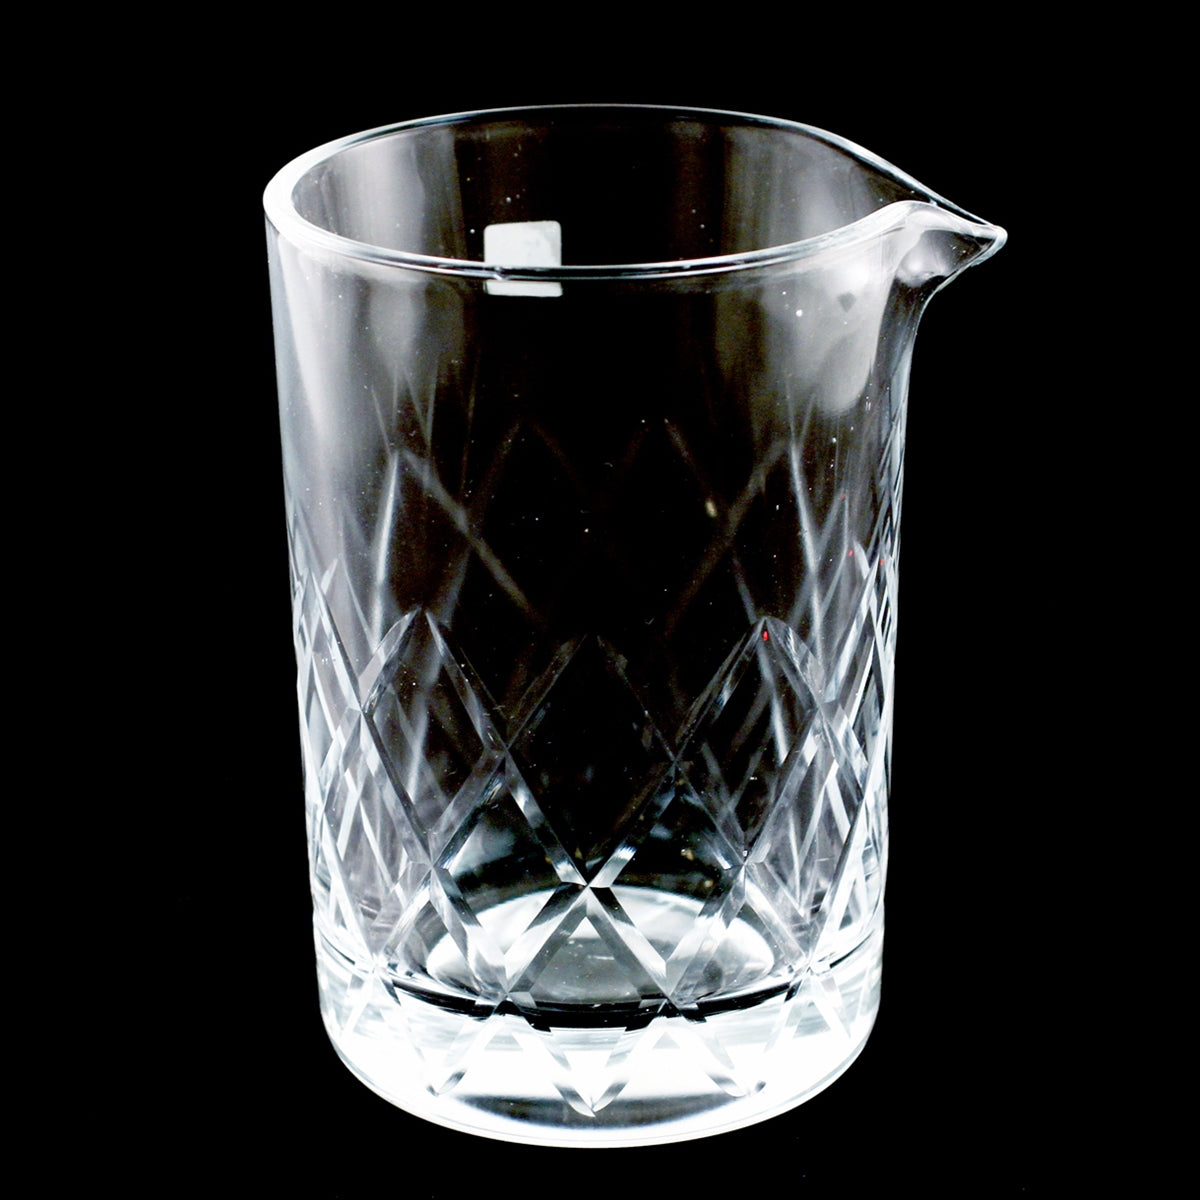 Maru-T Diamond Cut Mixing Glass 570ml (19.3 oz)